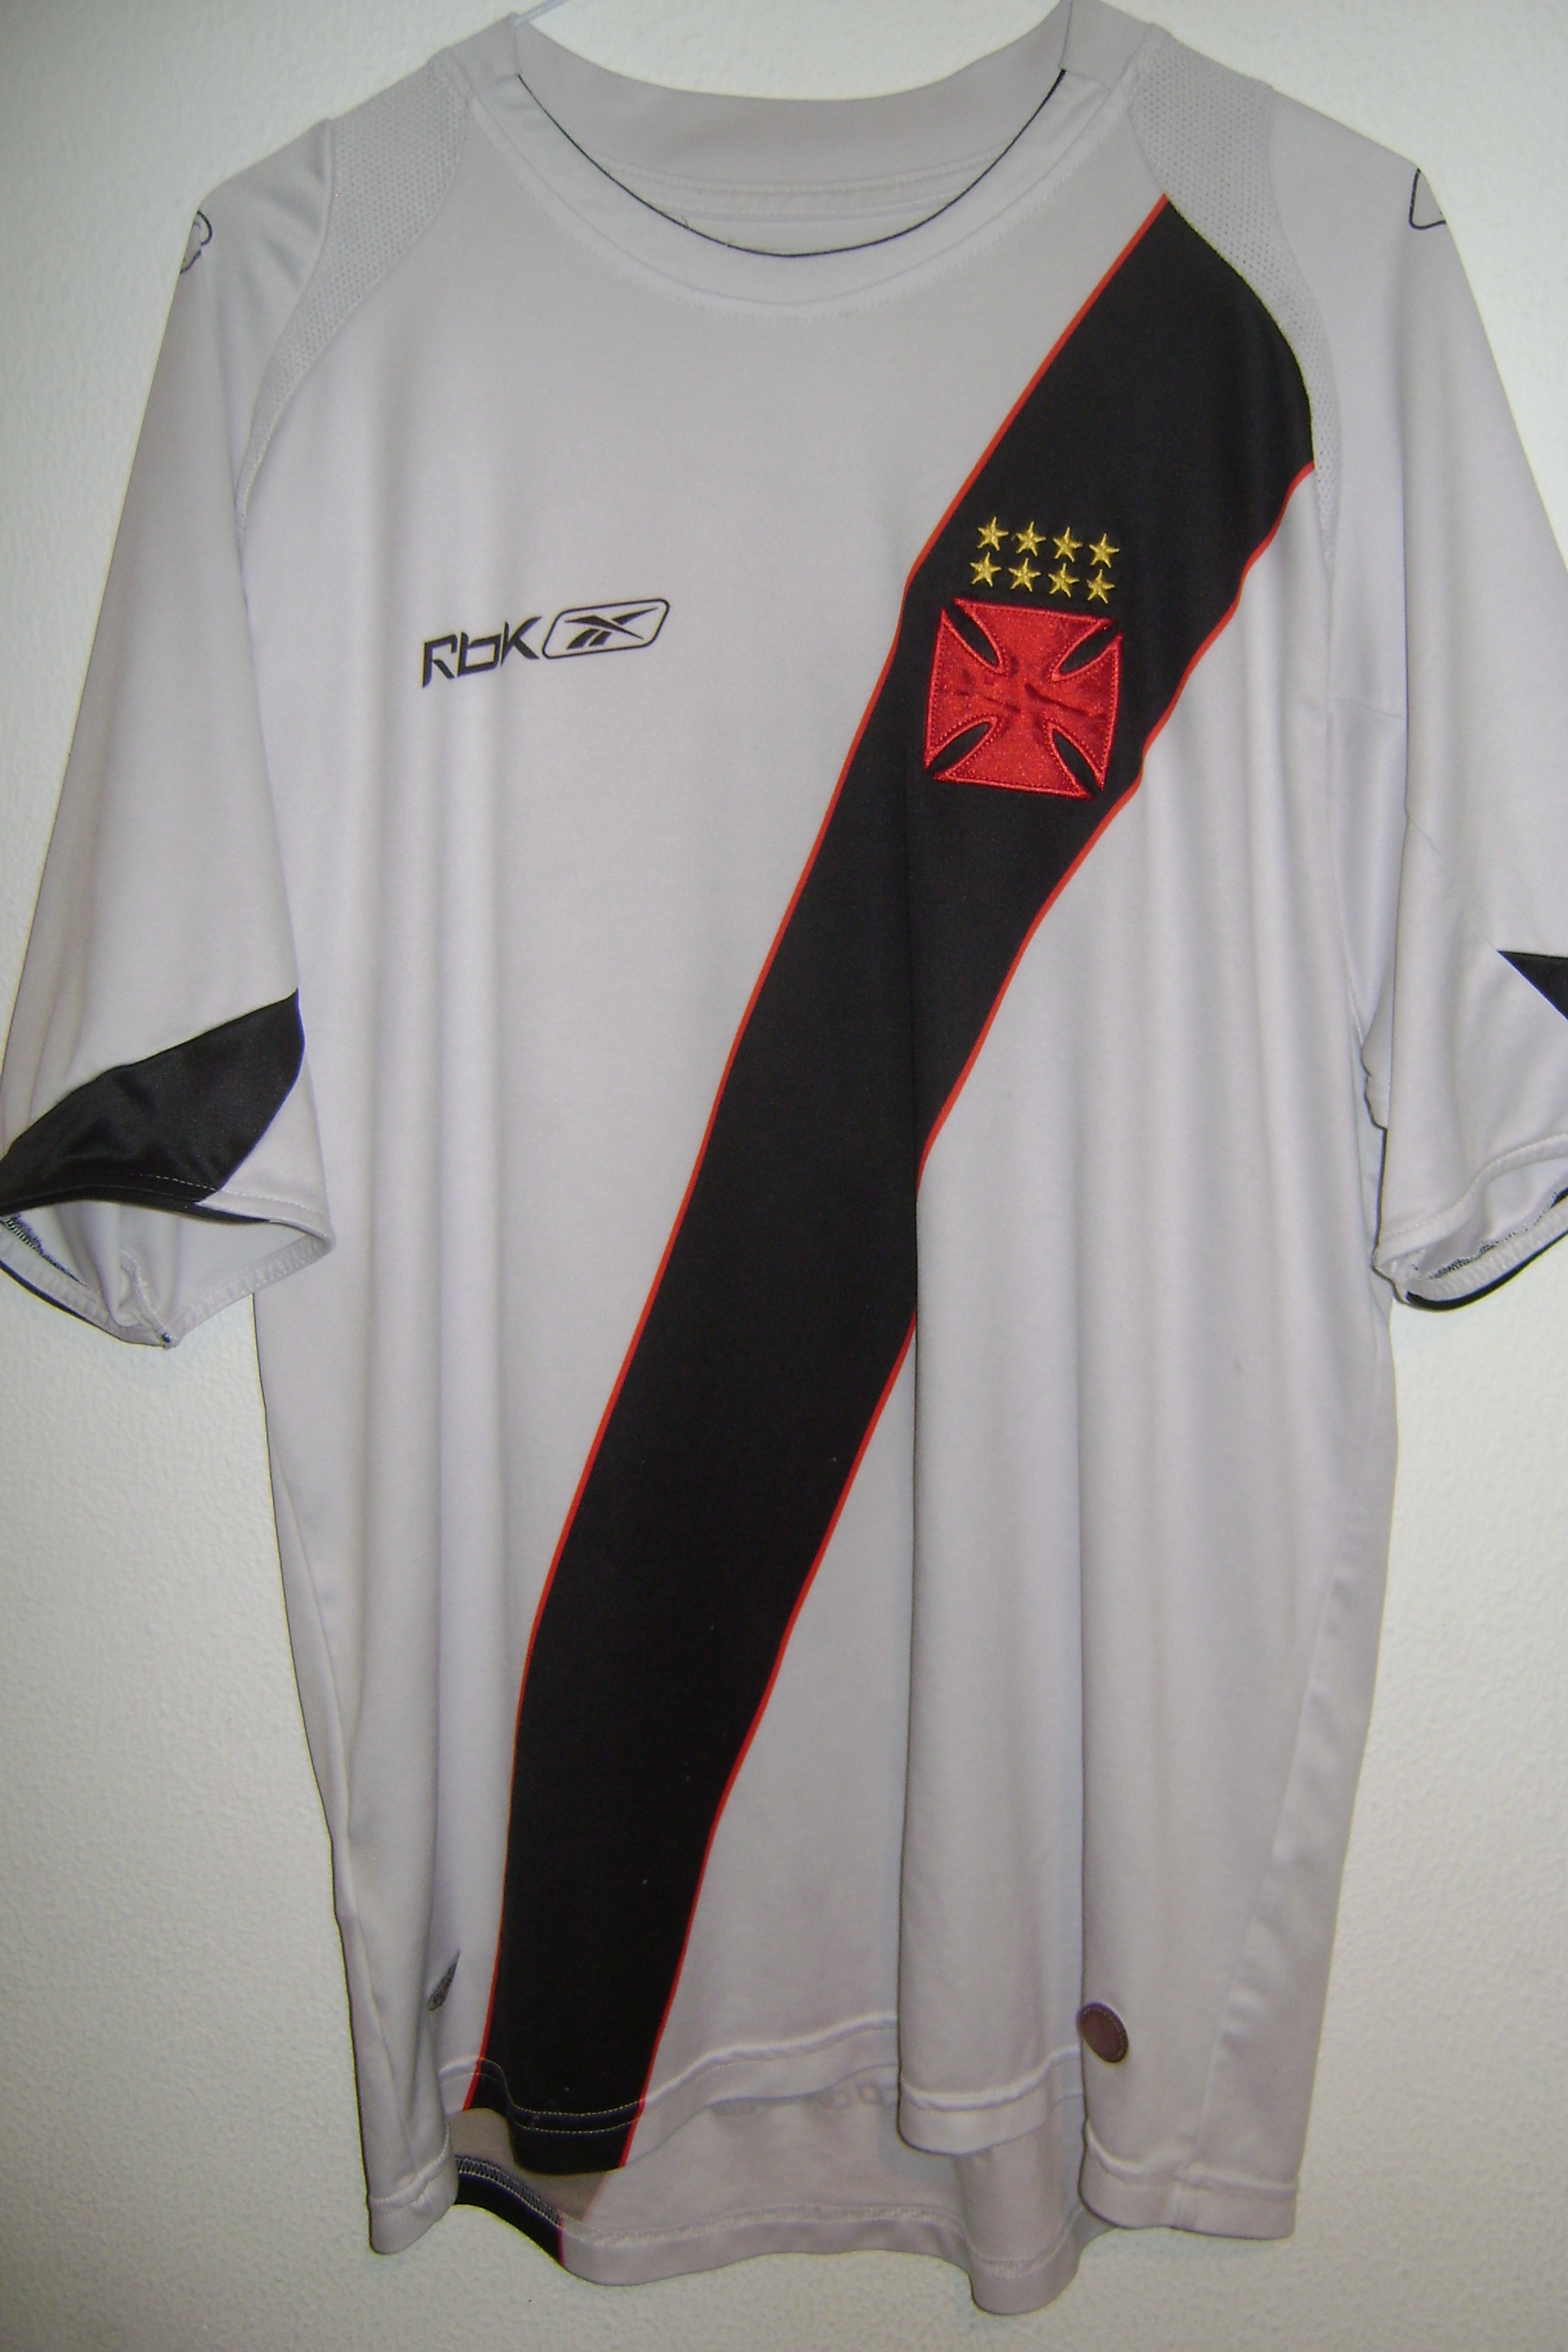 Uniformes do Club de Regatas Vasco da Gama - Wikiwand 3a306058793e2